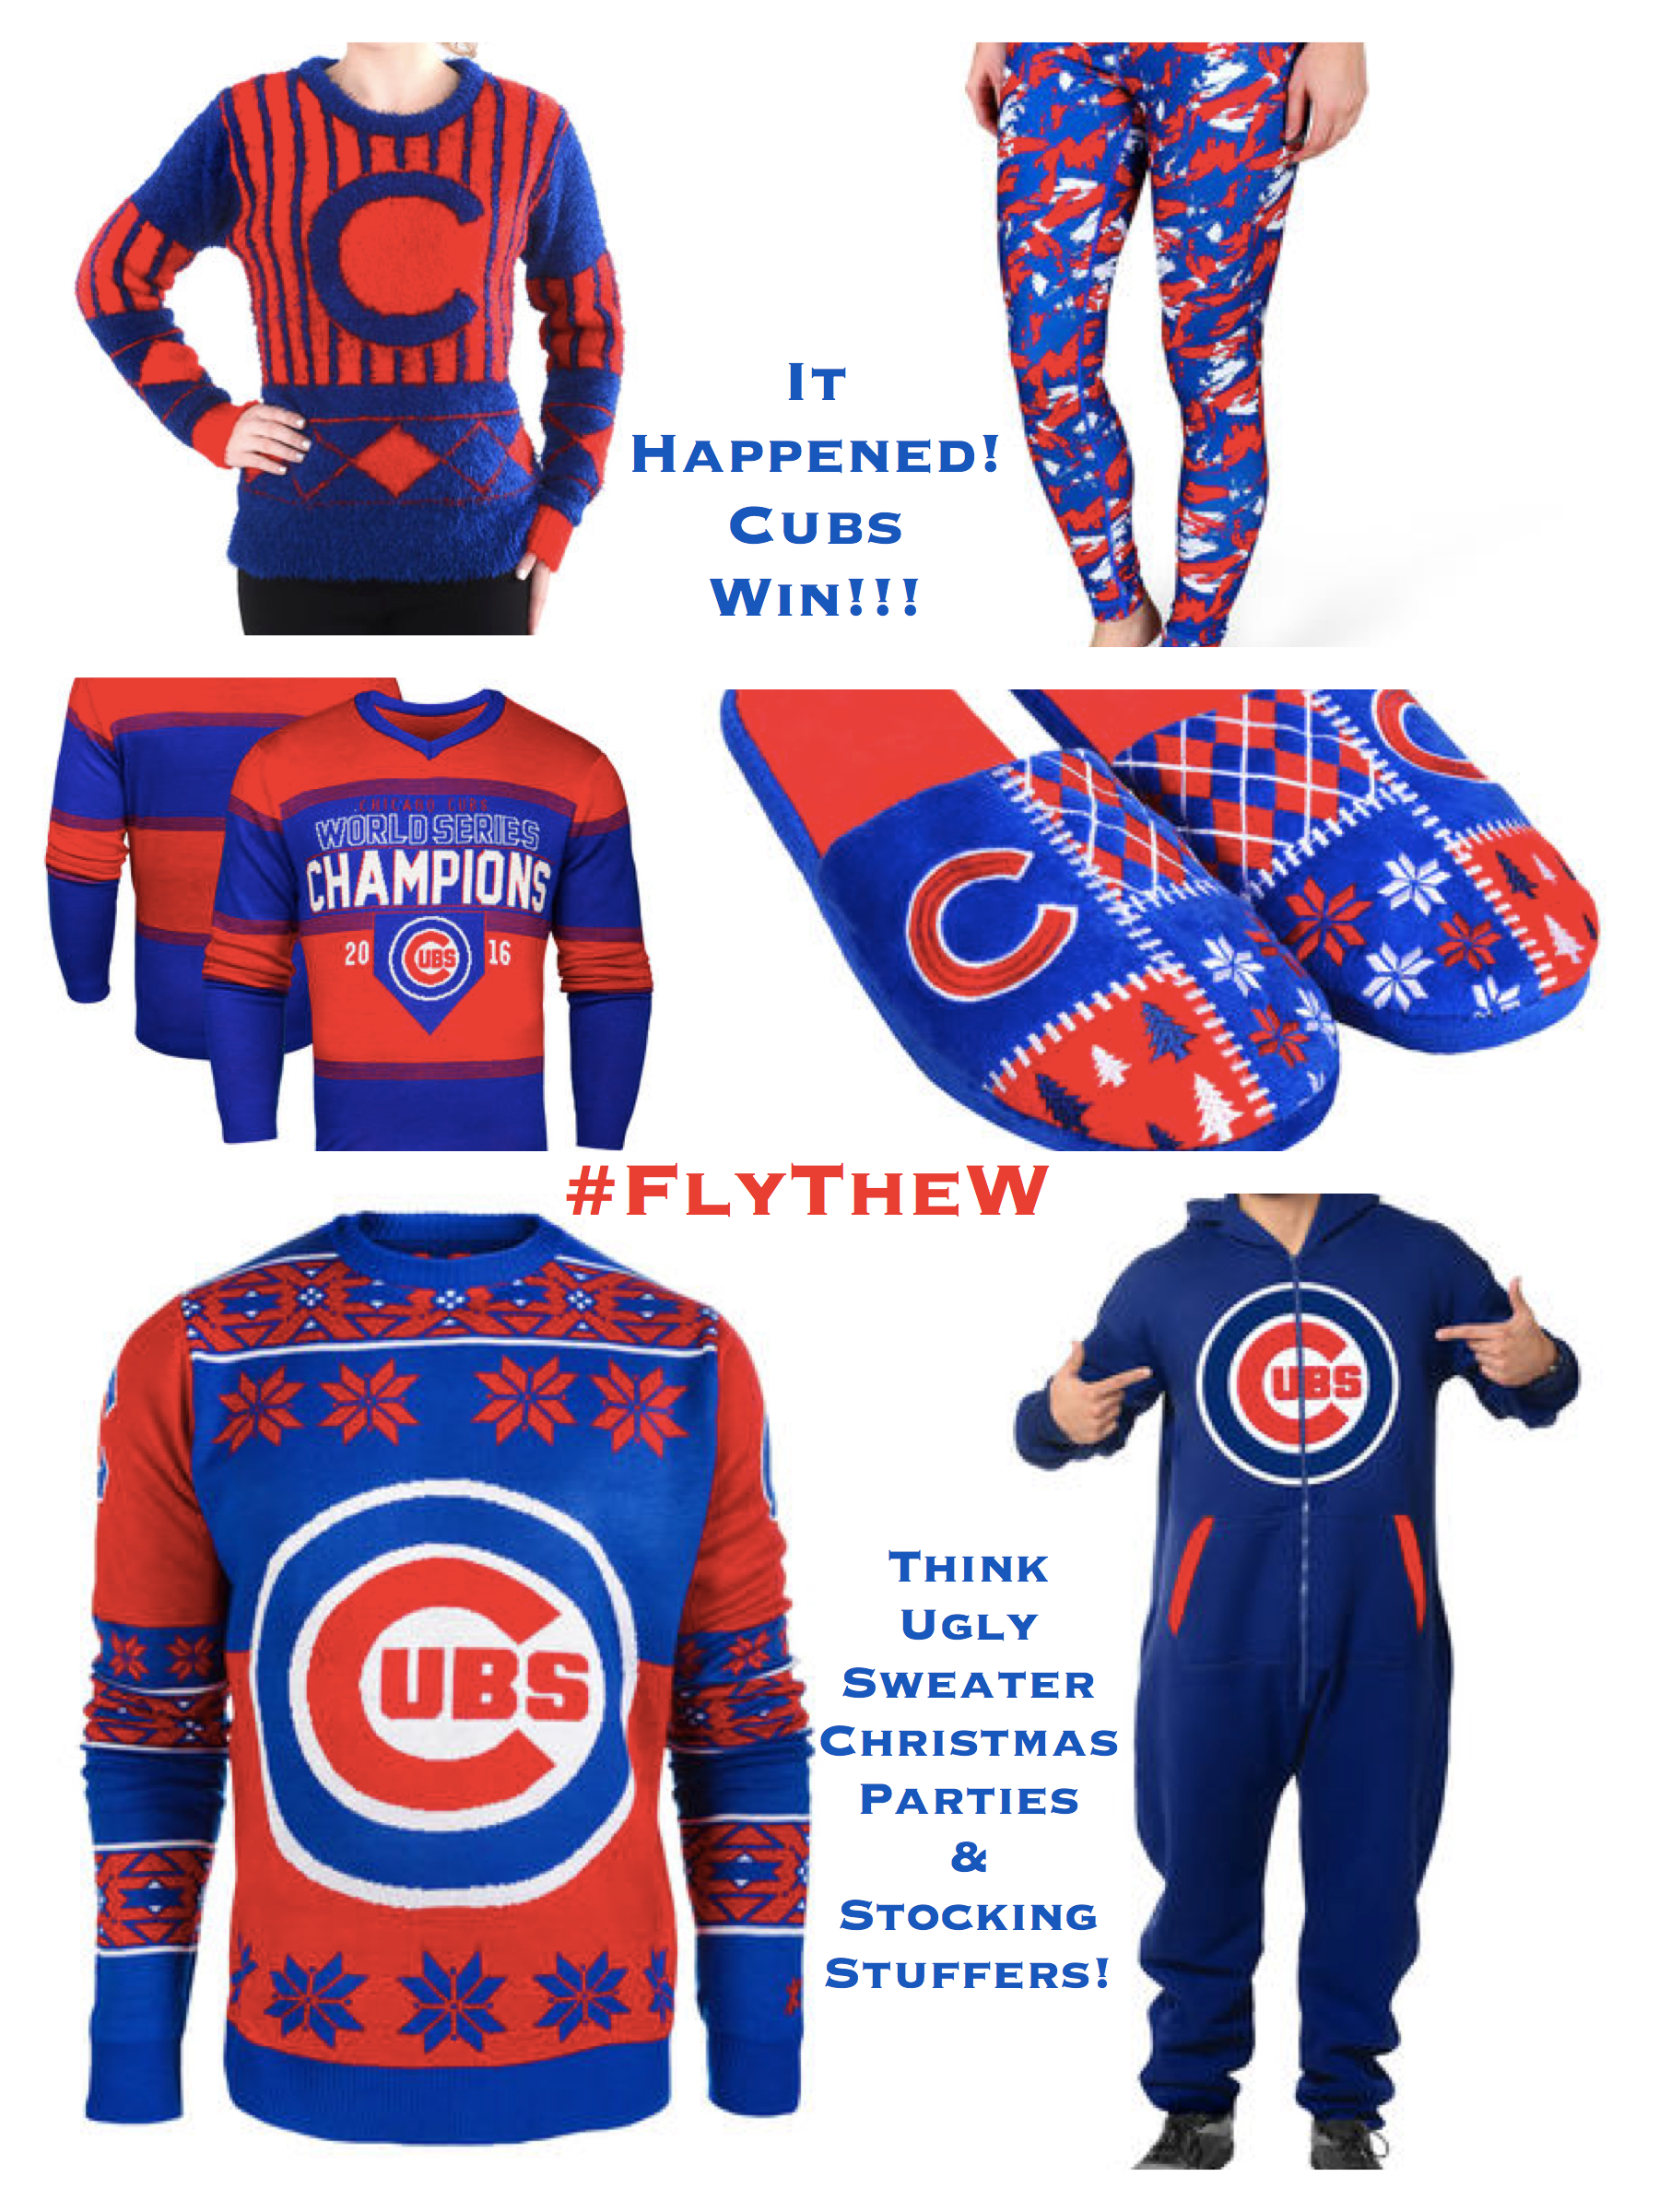 Cubs Win! Ugly Sweater Christmas Parties and Stocking Stuffers